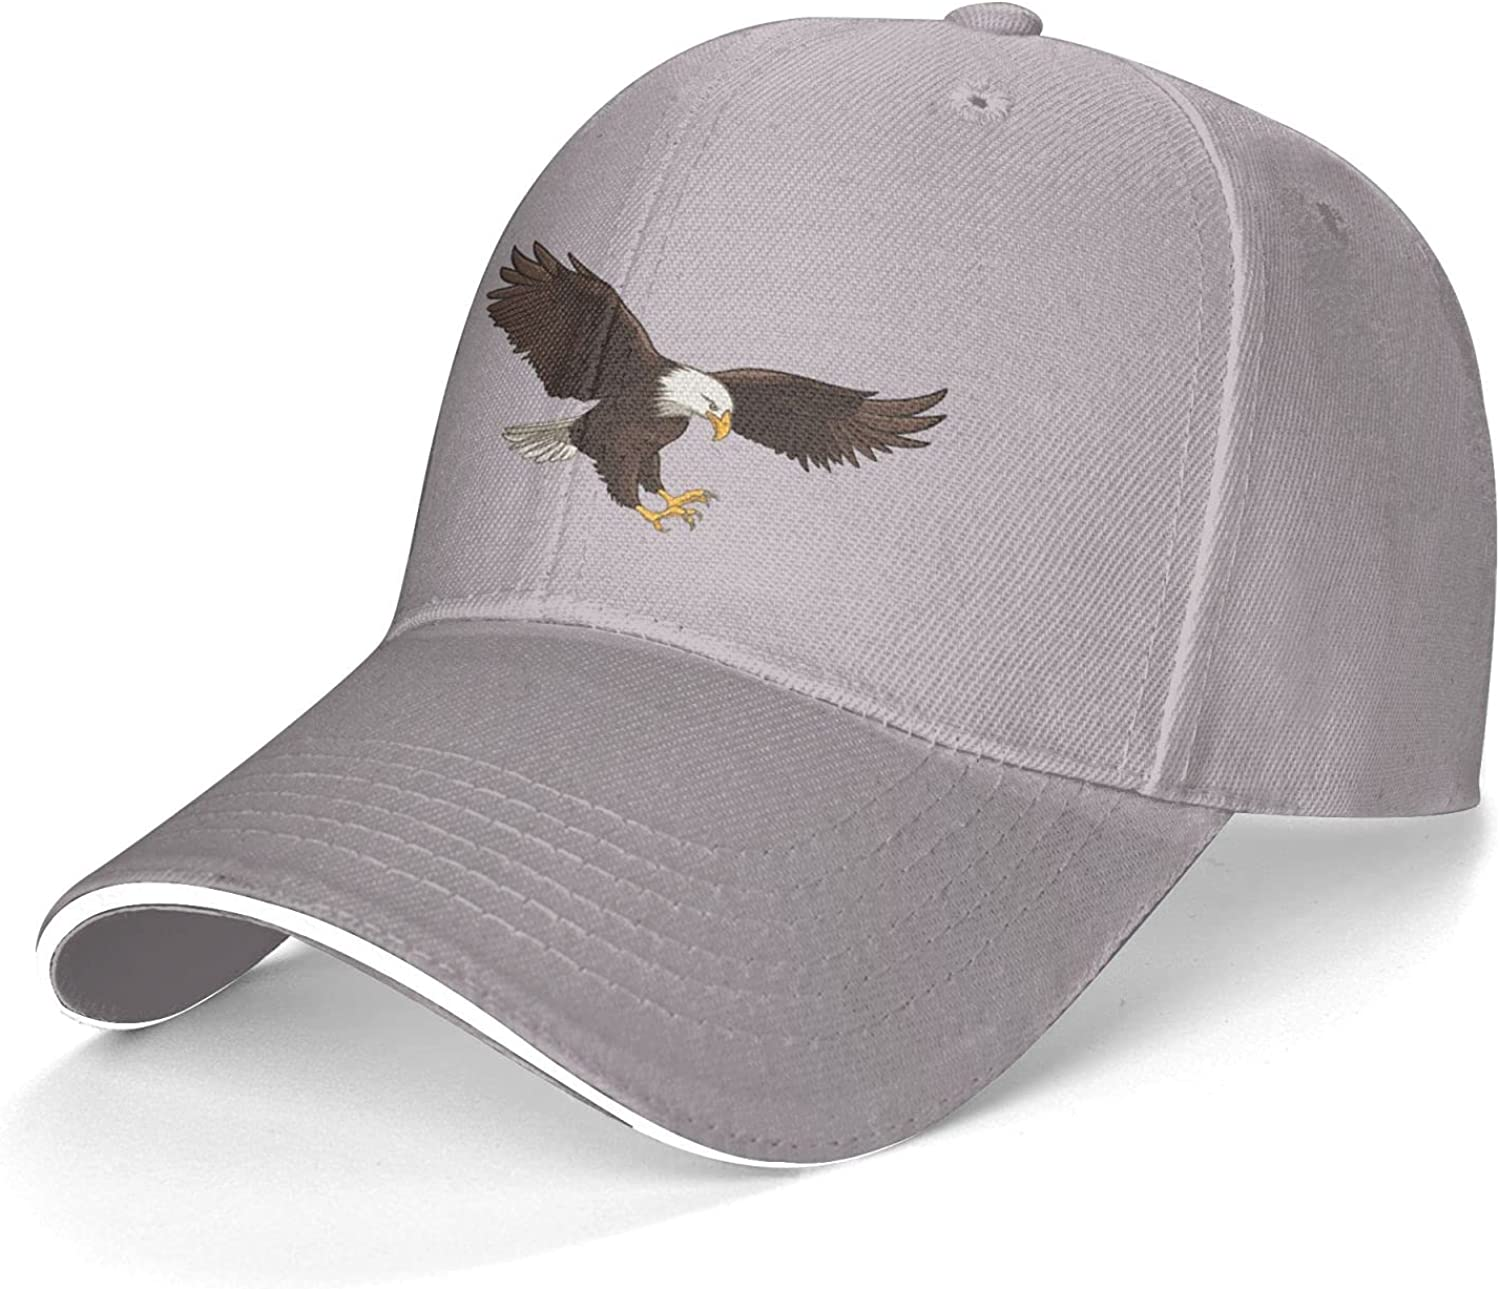 Eagle Fashion Sandwich Cap Fashion Hat for Man and Woman Cool Athletic Baseball Cap Adjustable Caps Dad Hat